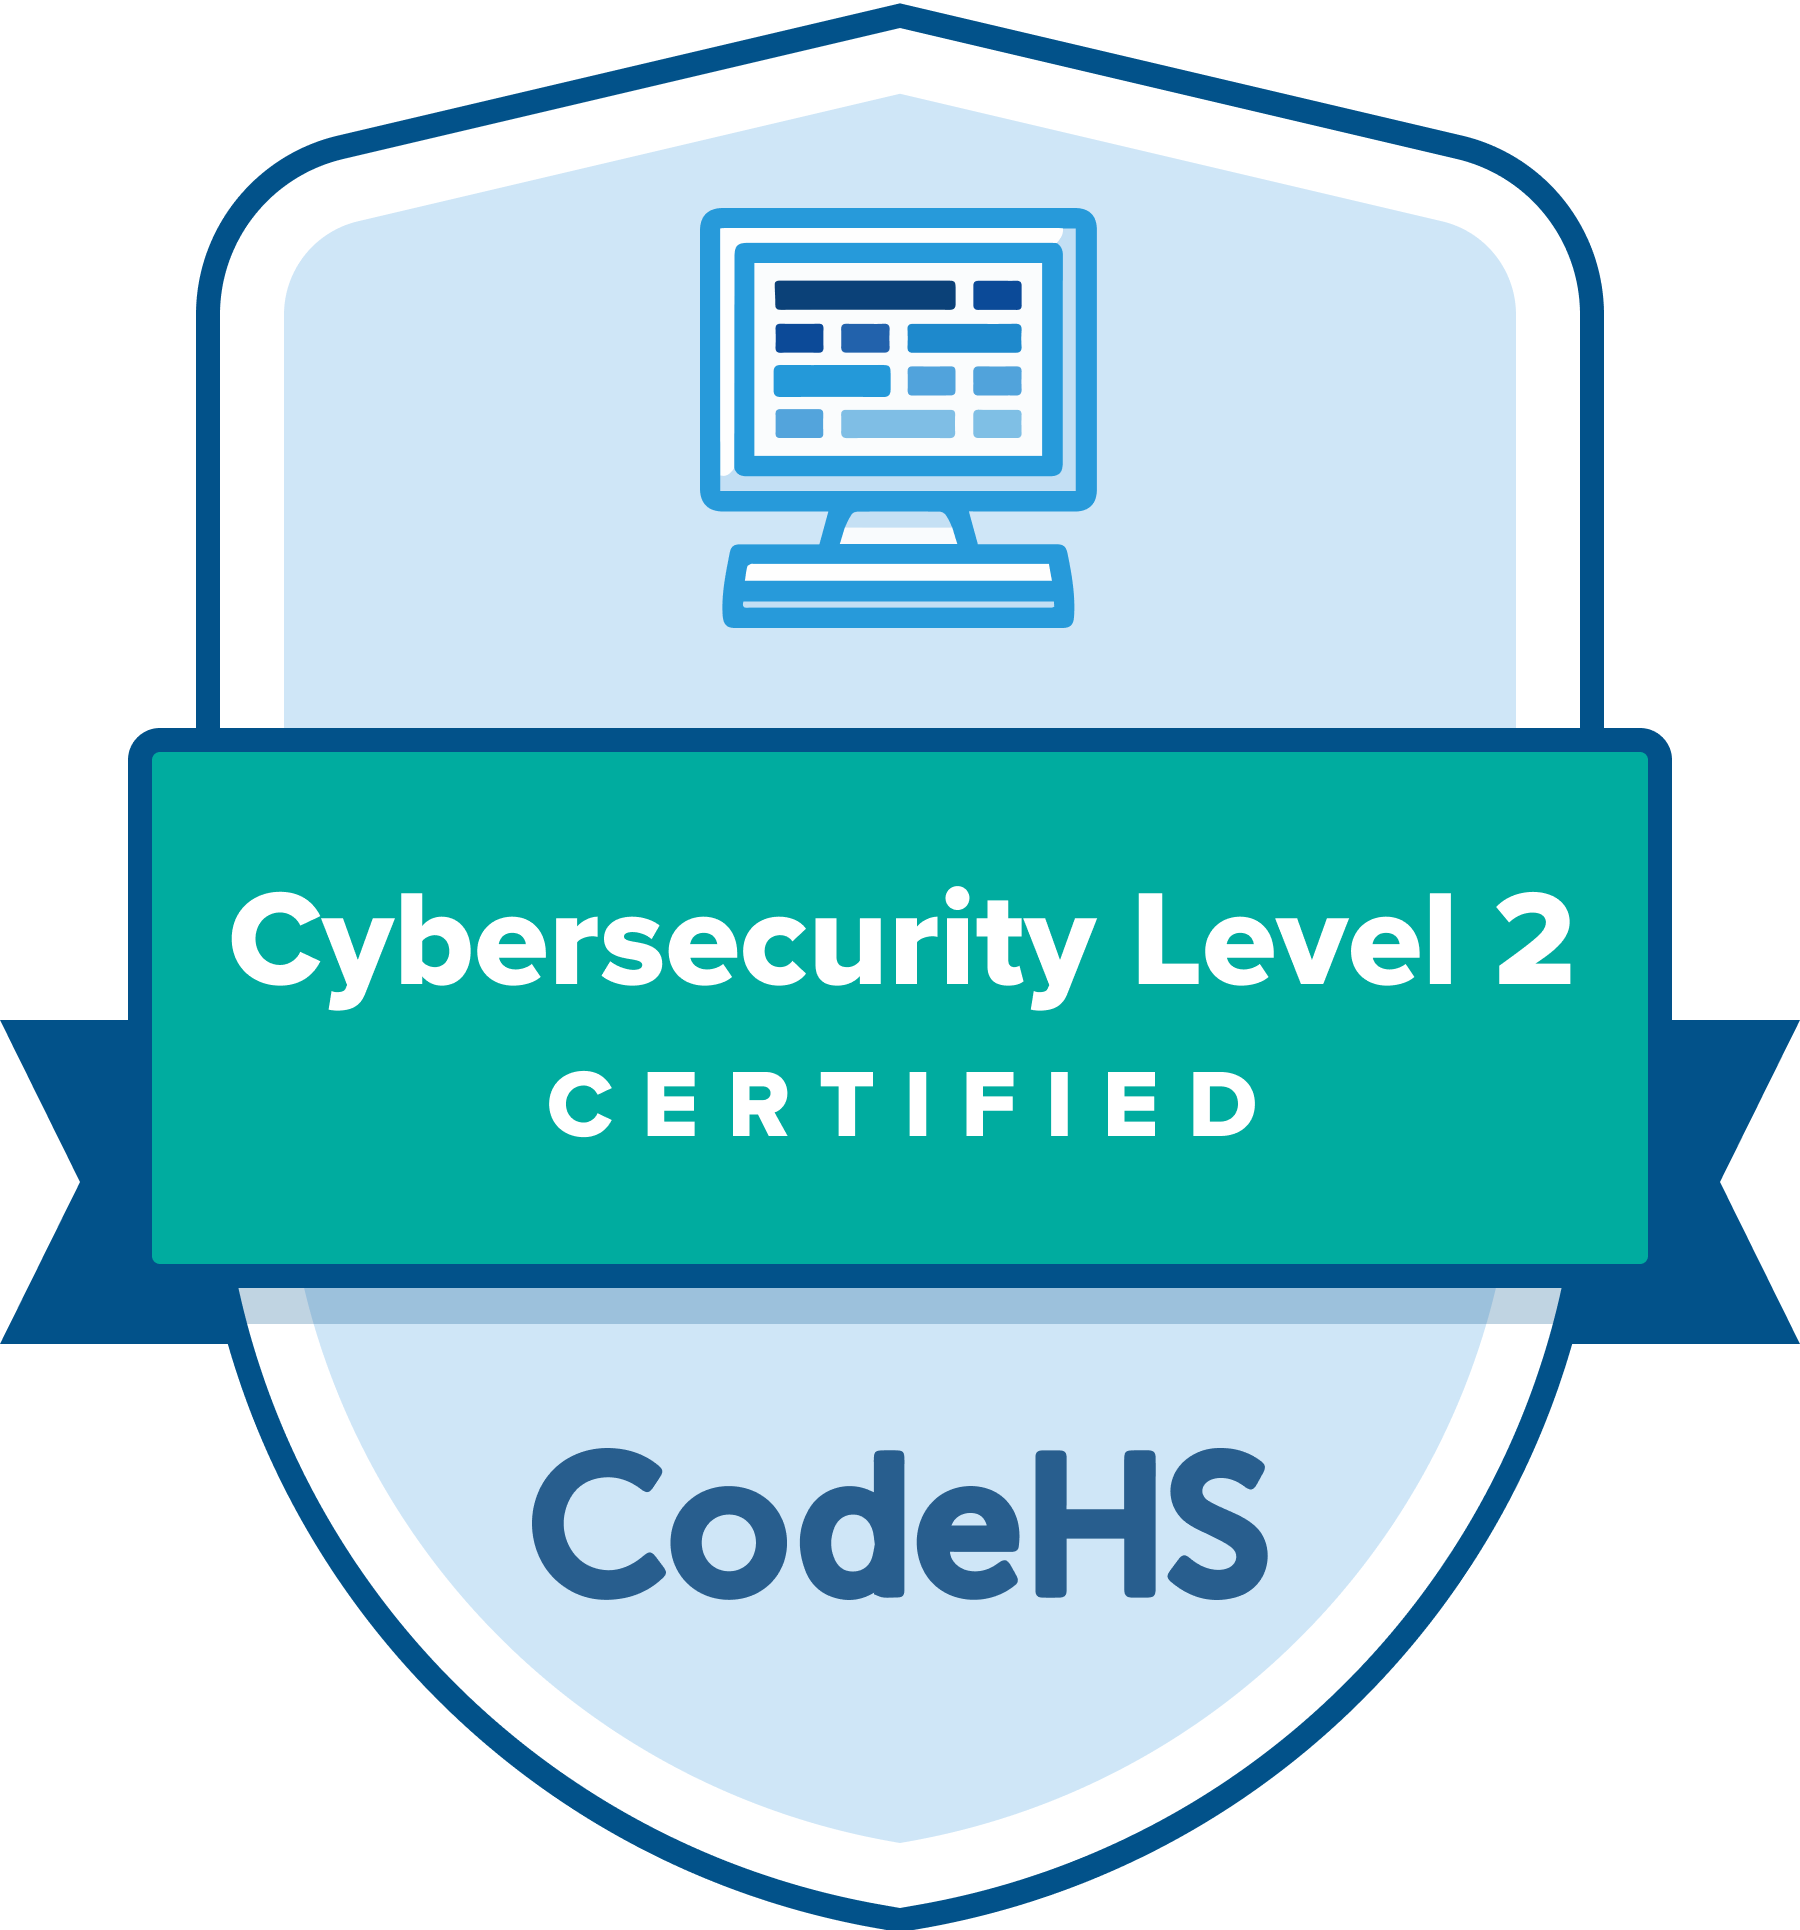 Cybersecurity Level 2 Certification Badge